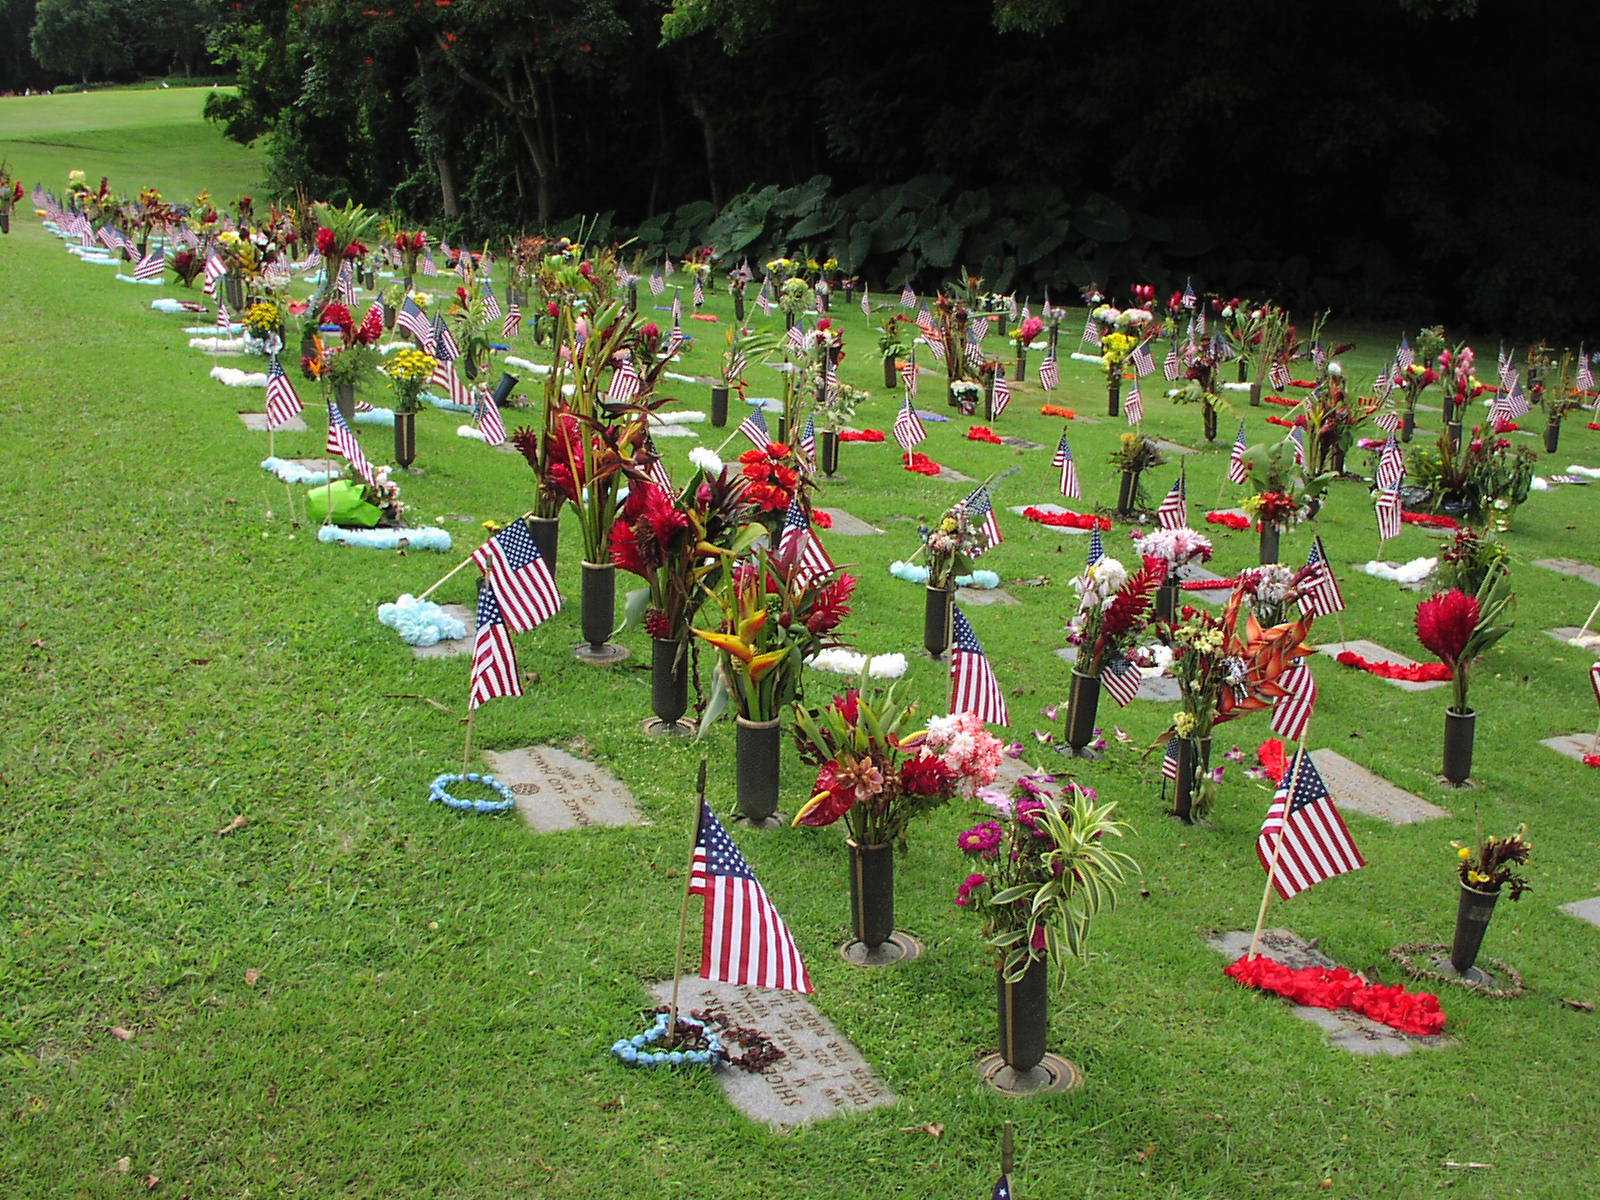 Above: A photo example of what Memorial Day looks like in Hawaii.